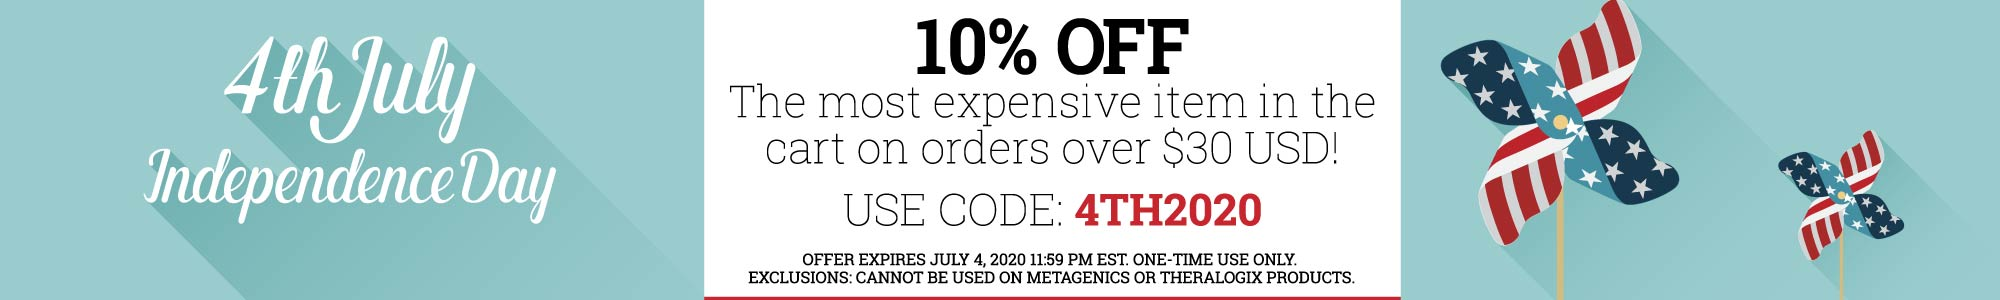 4th of July - 10% Off the most expensive item in the cart on orders over $30 USD. Use code: 4th2020. Offer expires July 04 2020. One time use only. Exclusions: Cannot be used on Metagenics or Theralogix products.